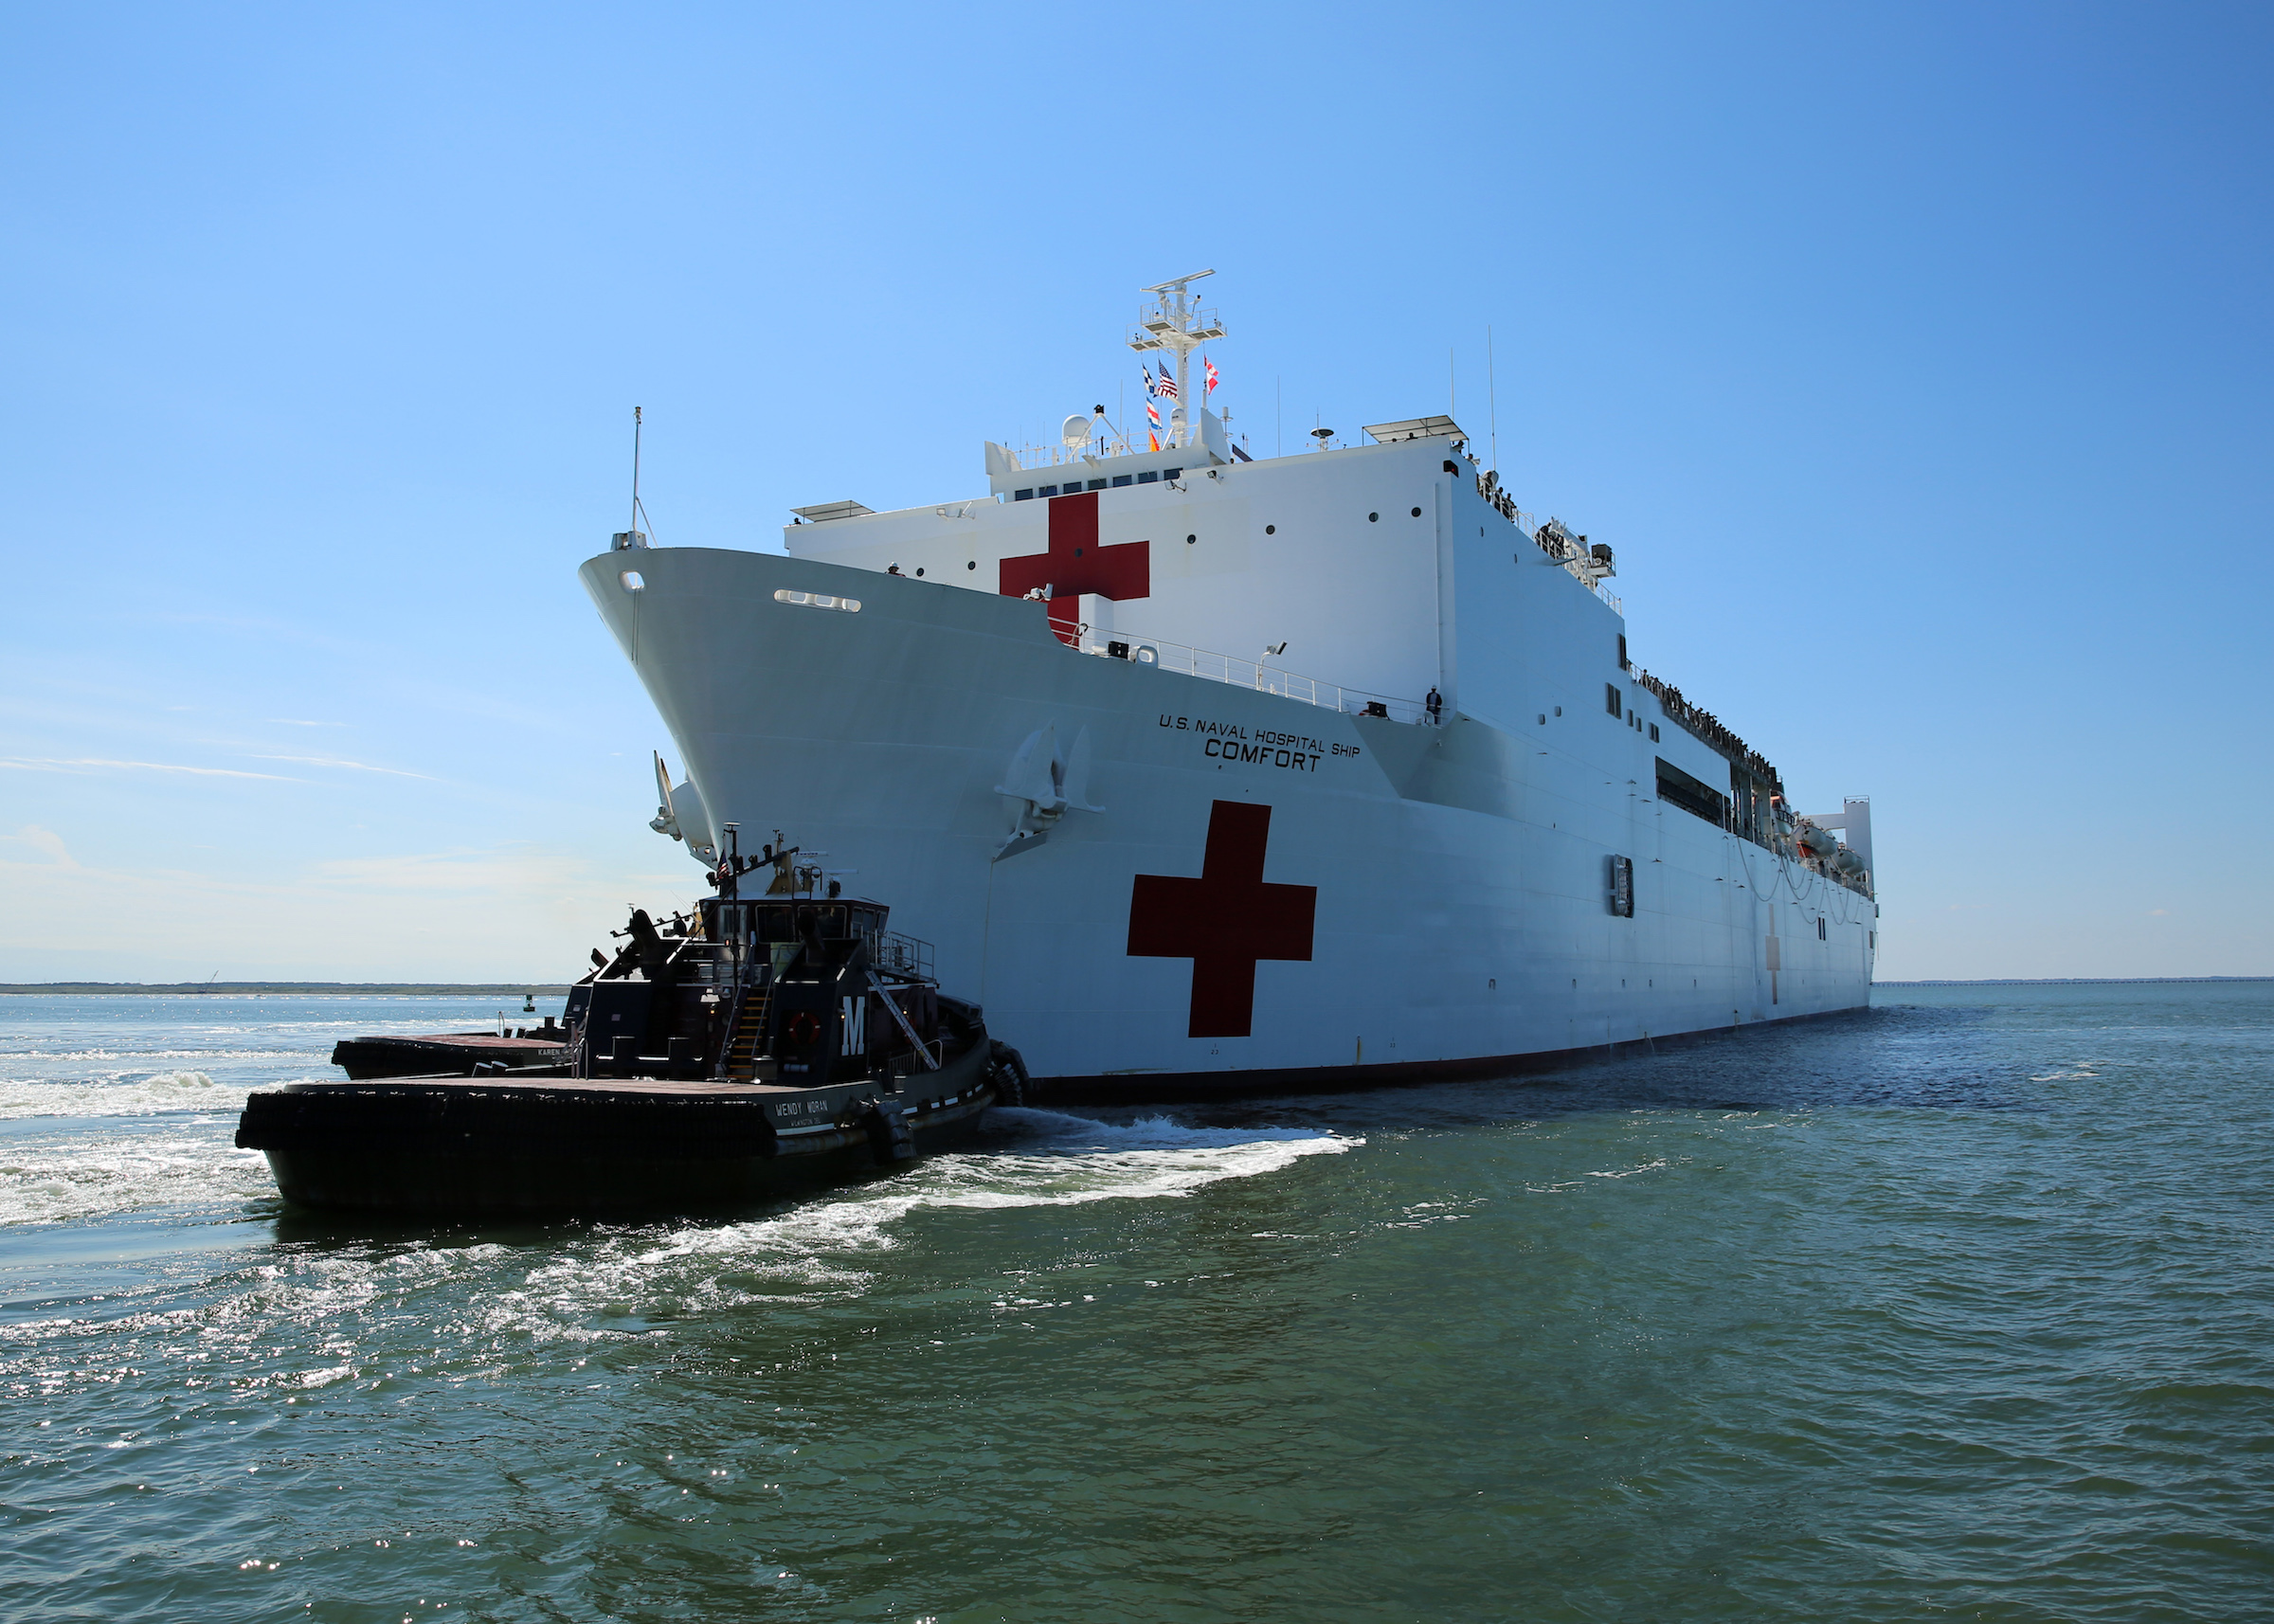 The Military Sealift Command hospital ship USNS Comfort departs Naval Station Norfolk to support hurricane relief efforts in Puerto Rico.